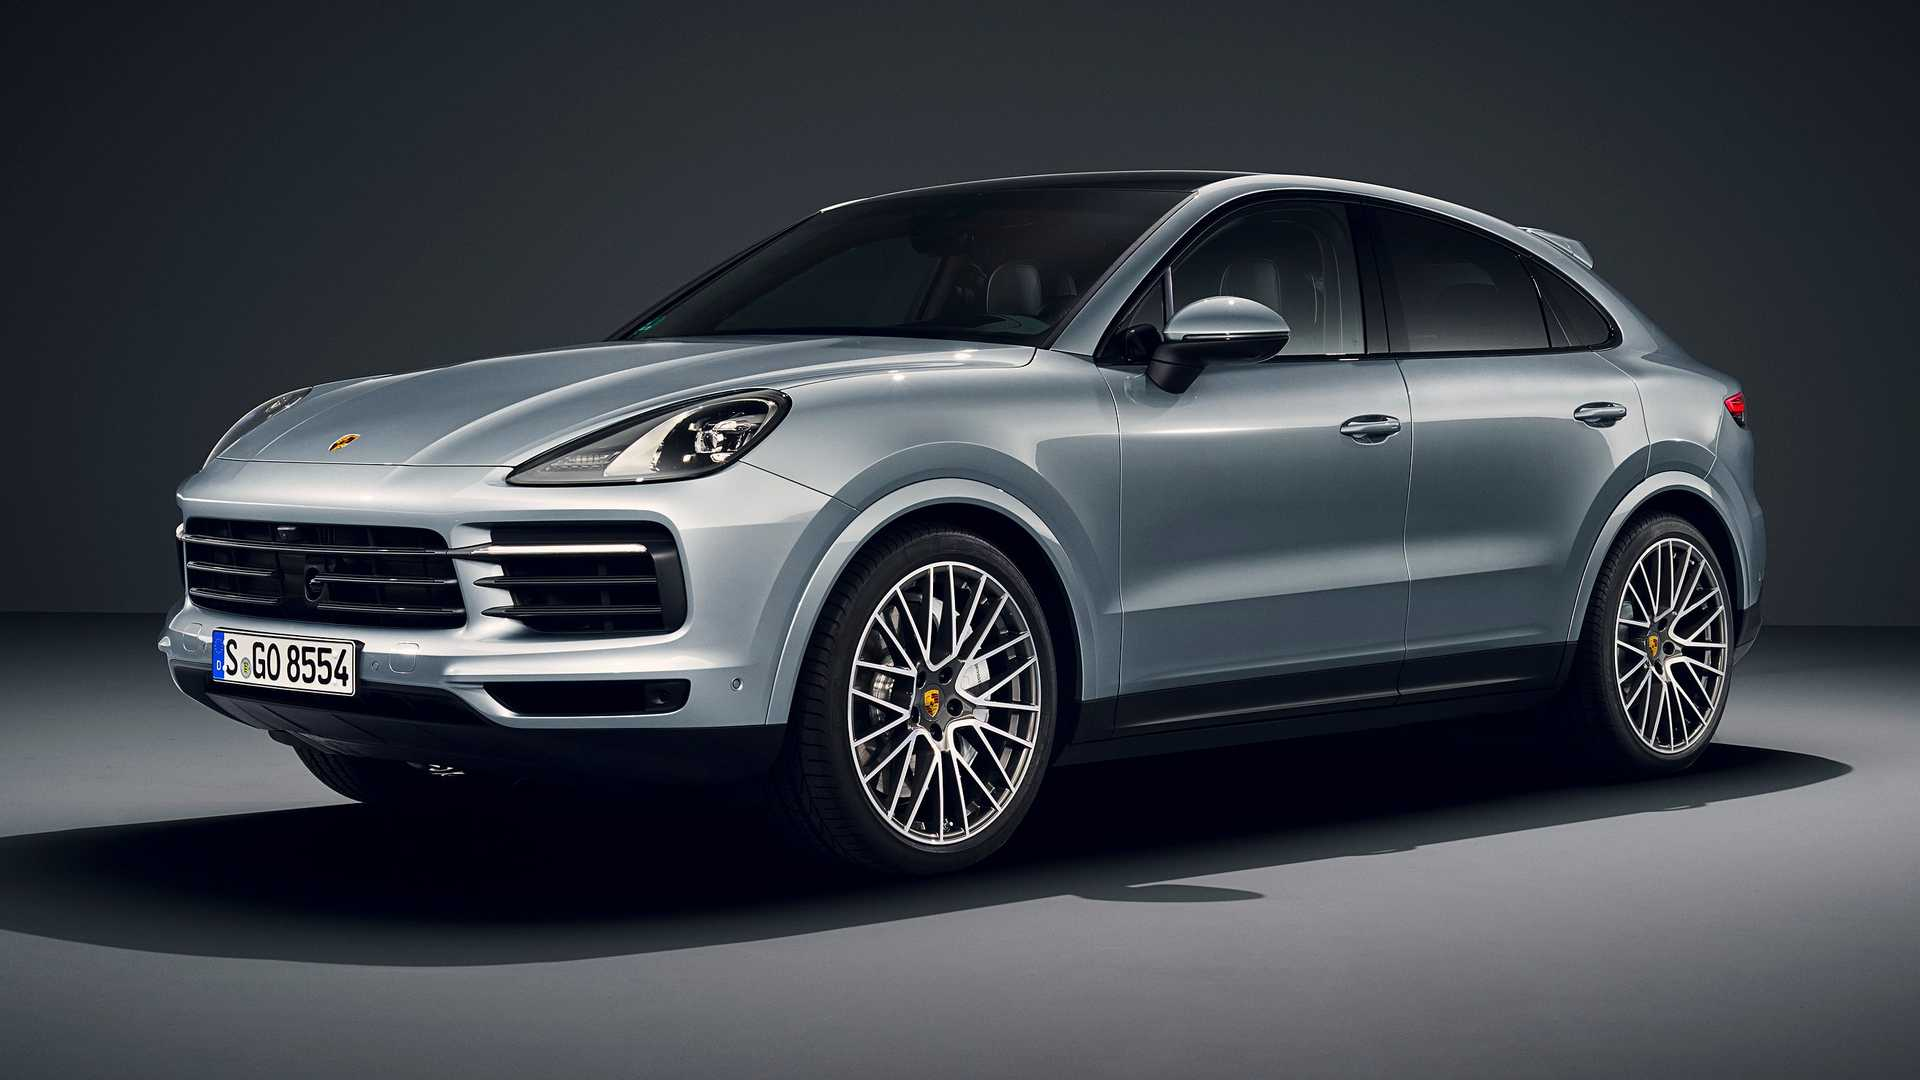 74 New 2020 Porsche Cayenne Turbo S New Review